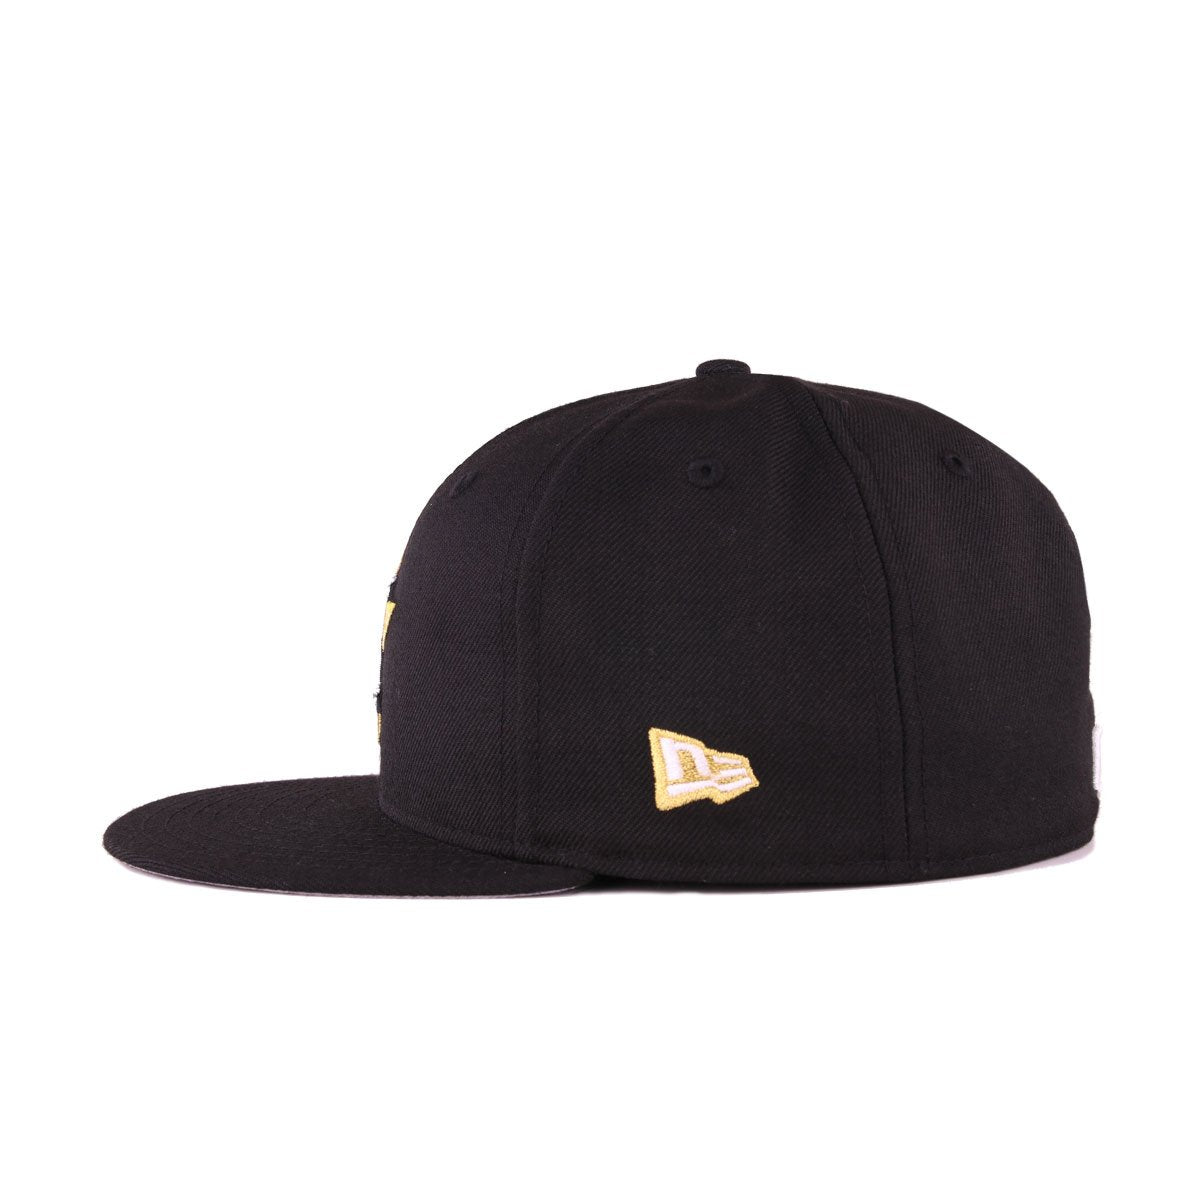 Houston Astros Black Metallic Gold New Era 59Fifty Fitted